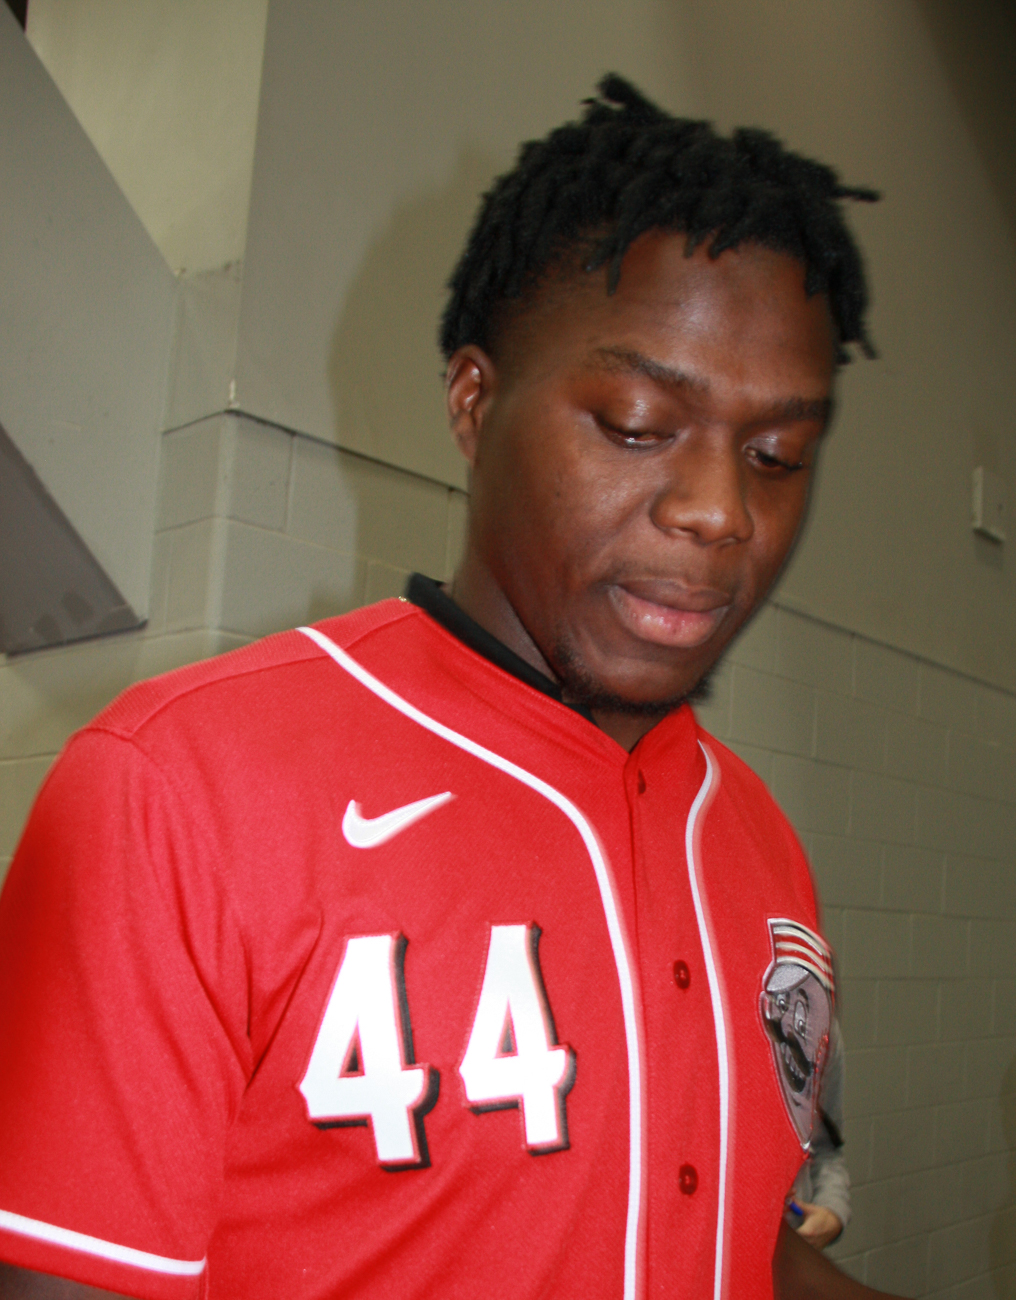 Aristides Aquino, right fielder #44